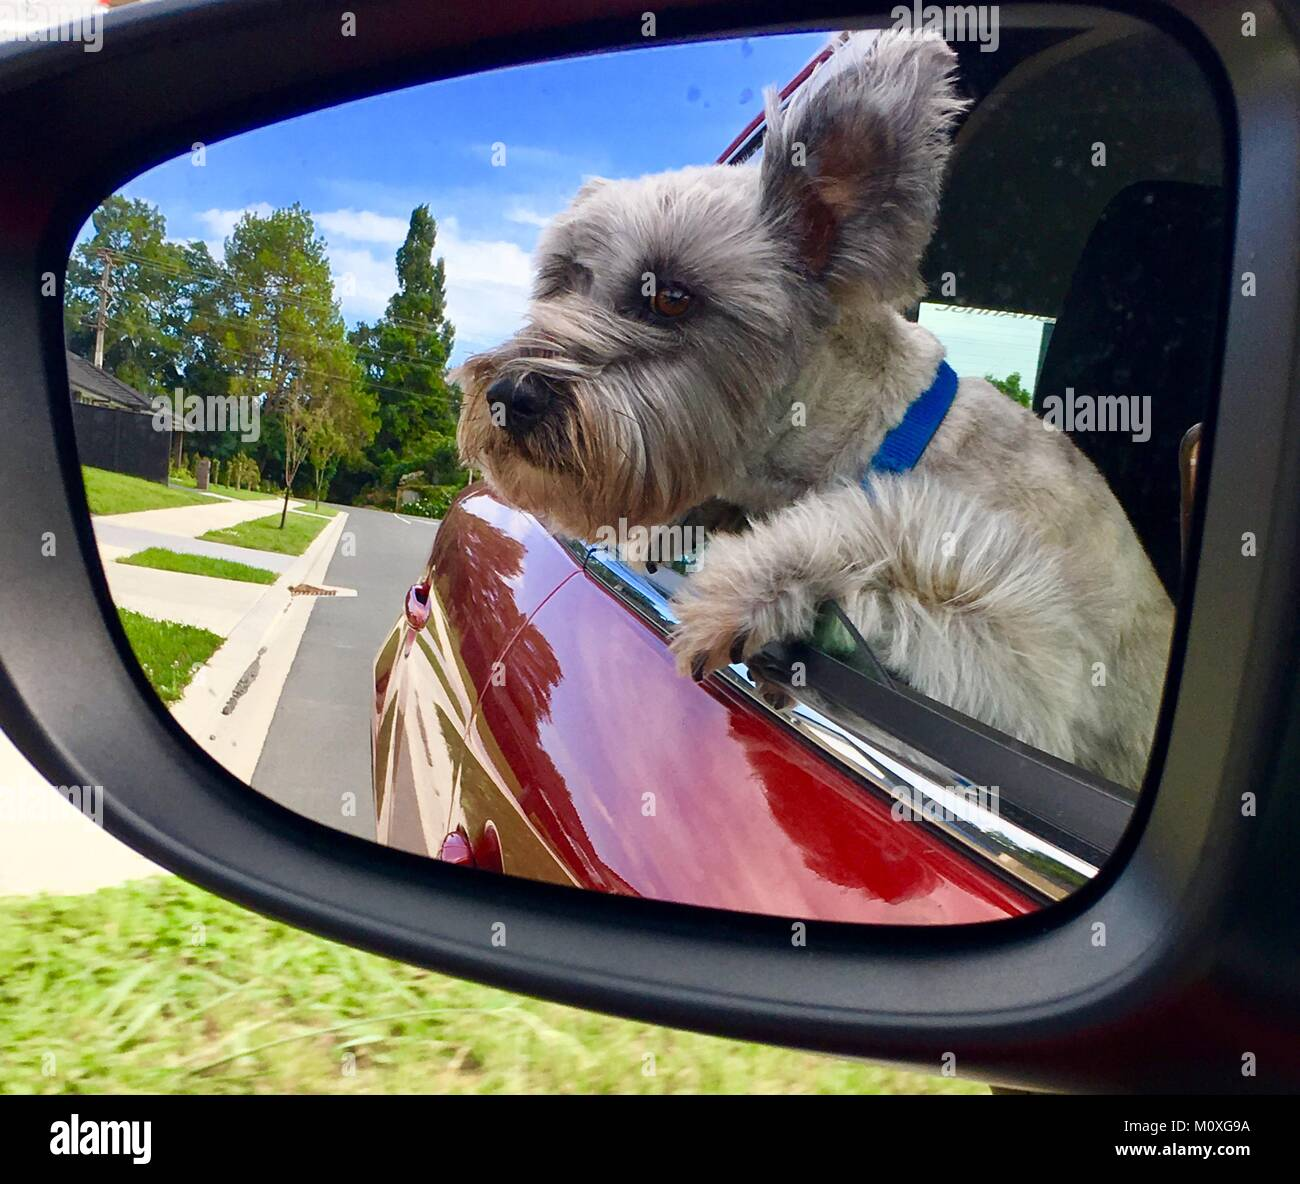 small puppy dog with head out of car window reflected in wing mirror - Stock Image